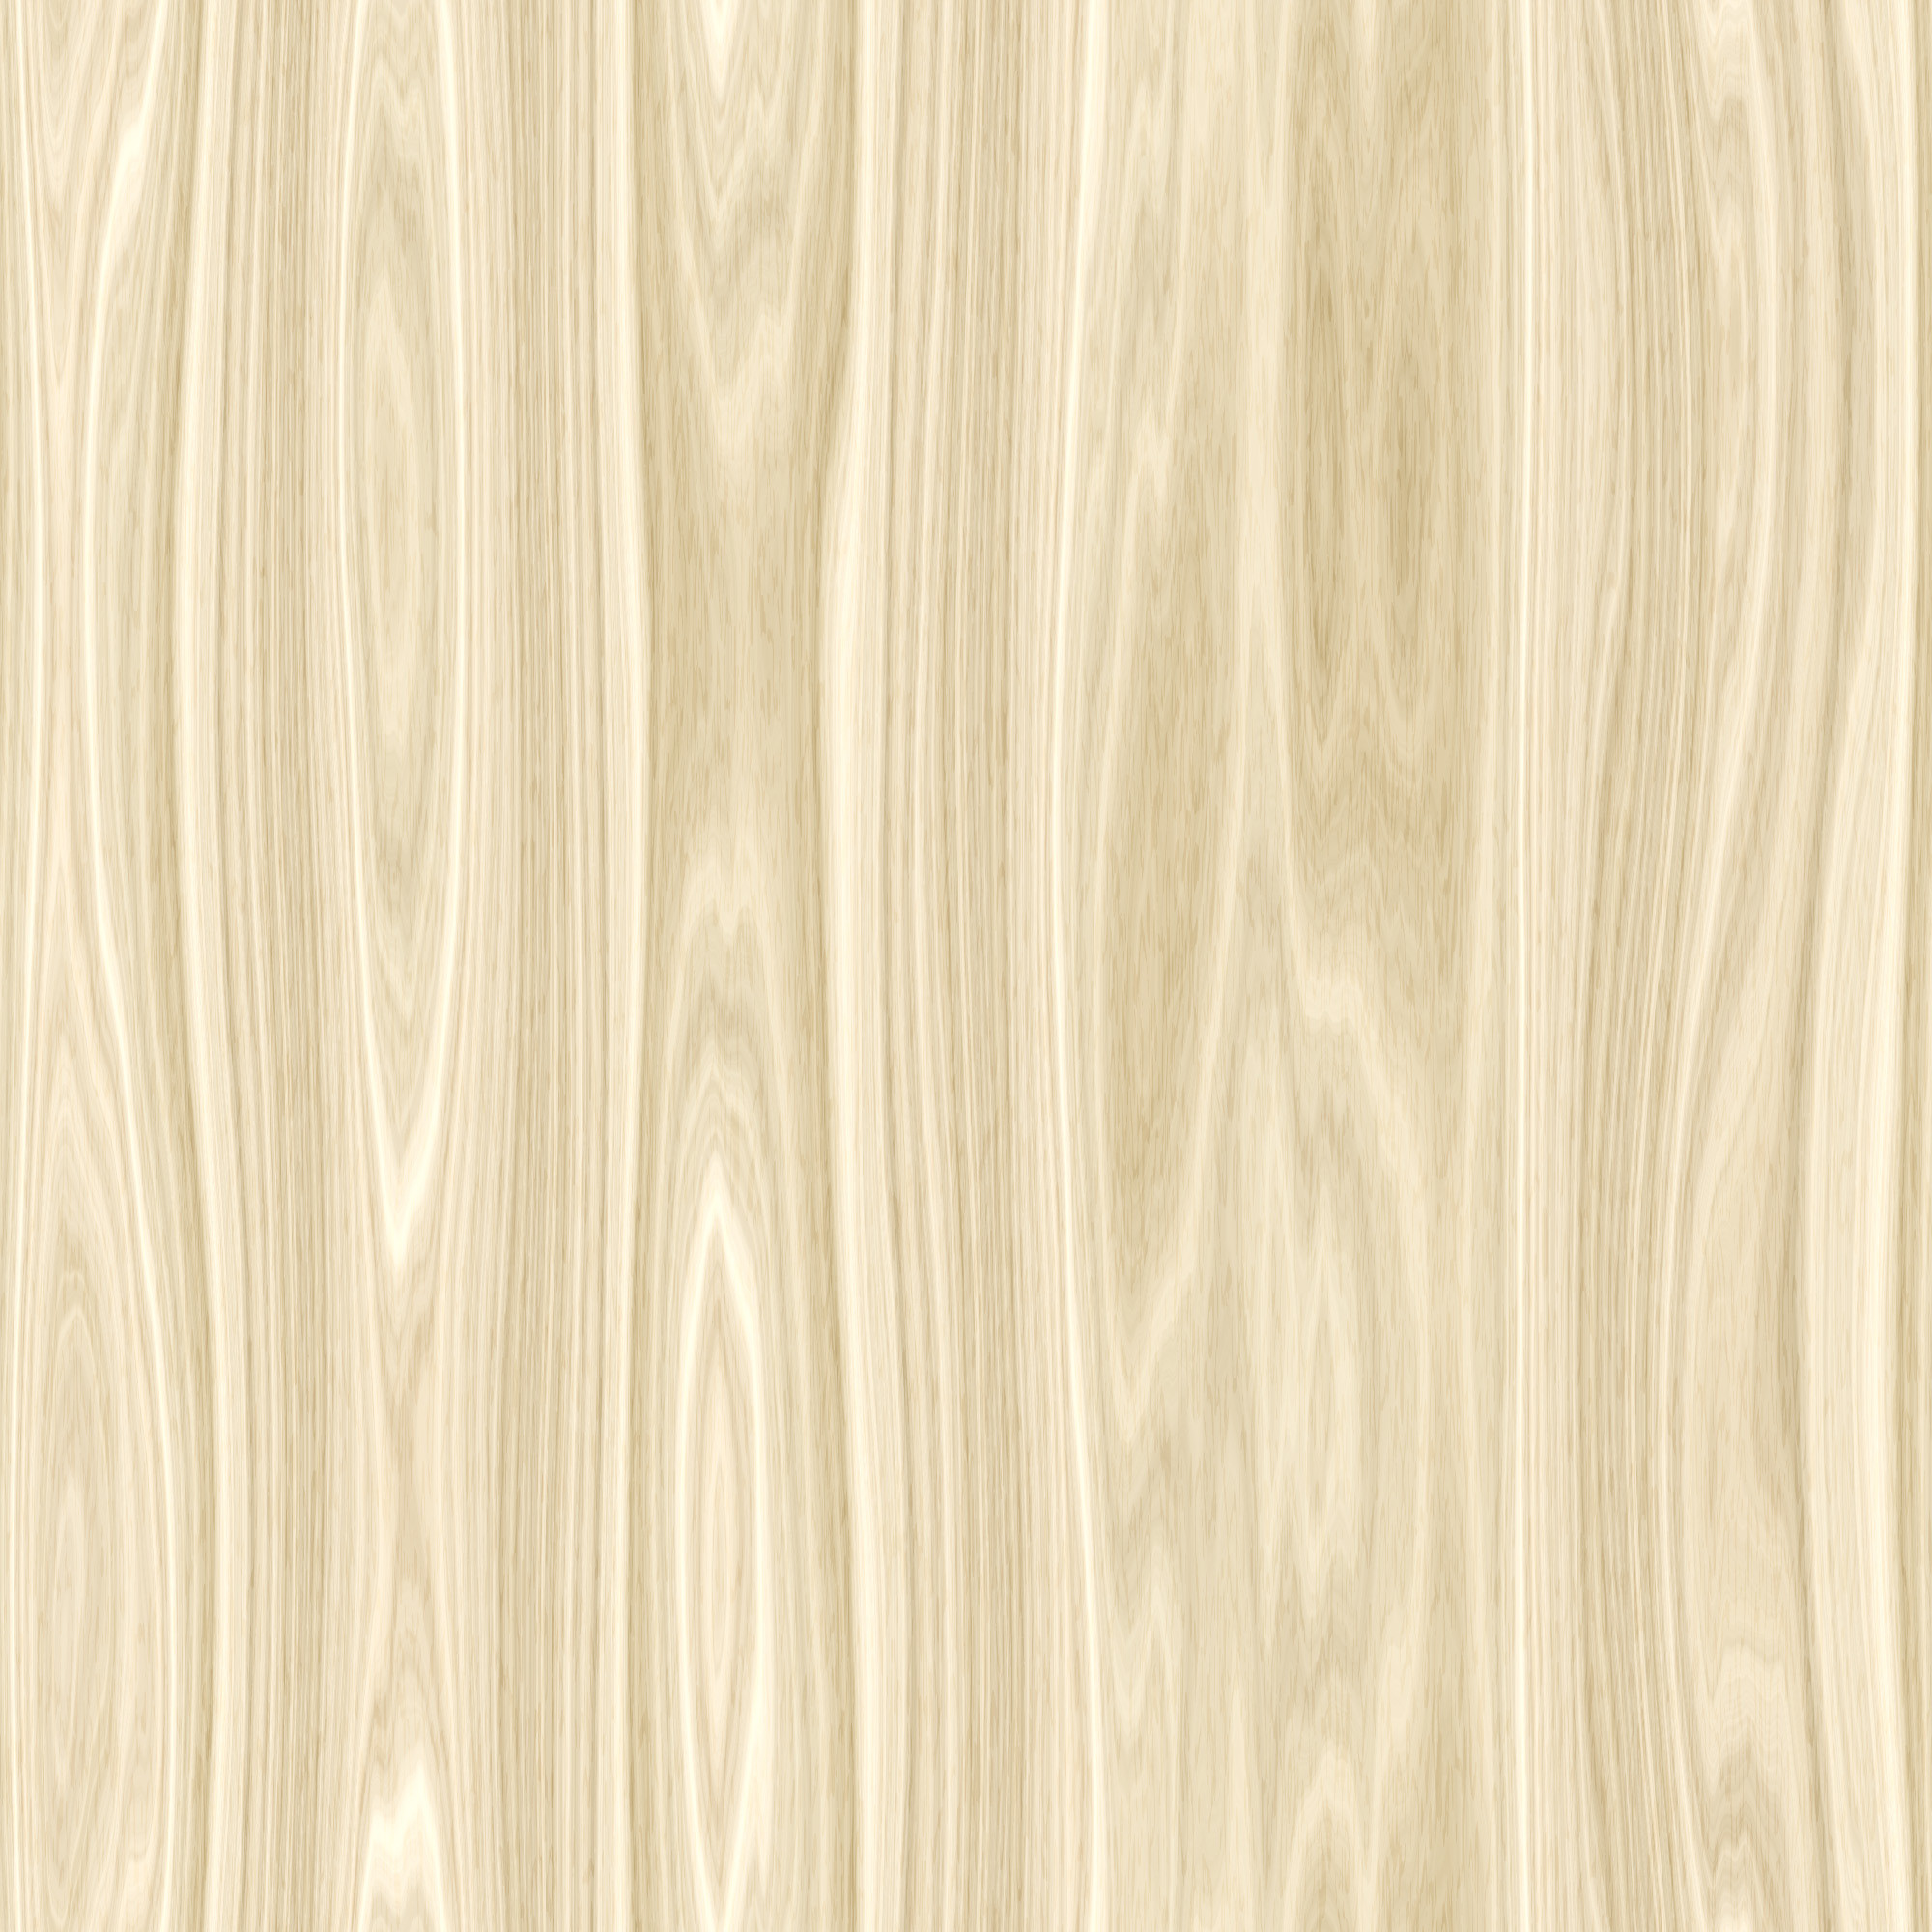 white background seamless wood texture | www.myfreetextures.com | 1500 .